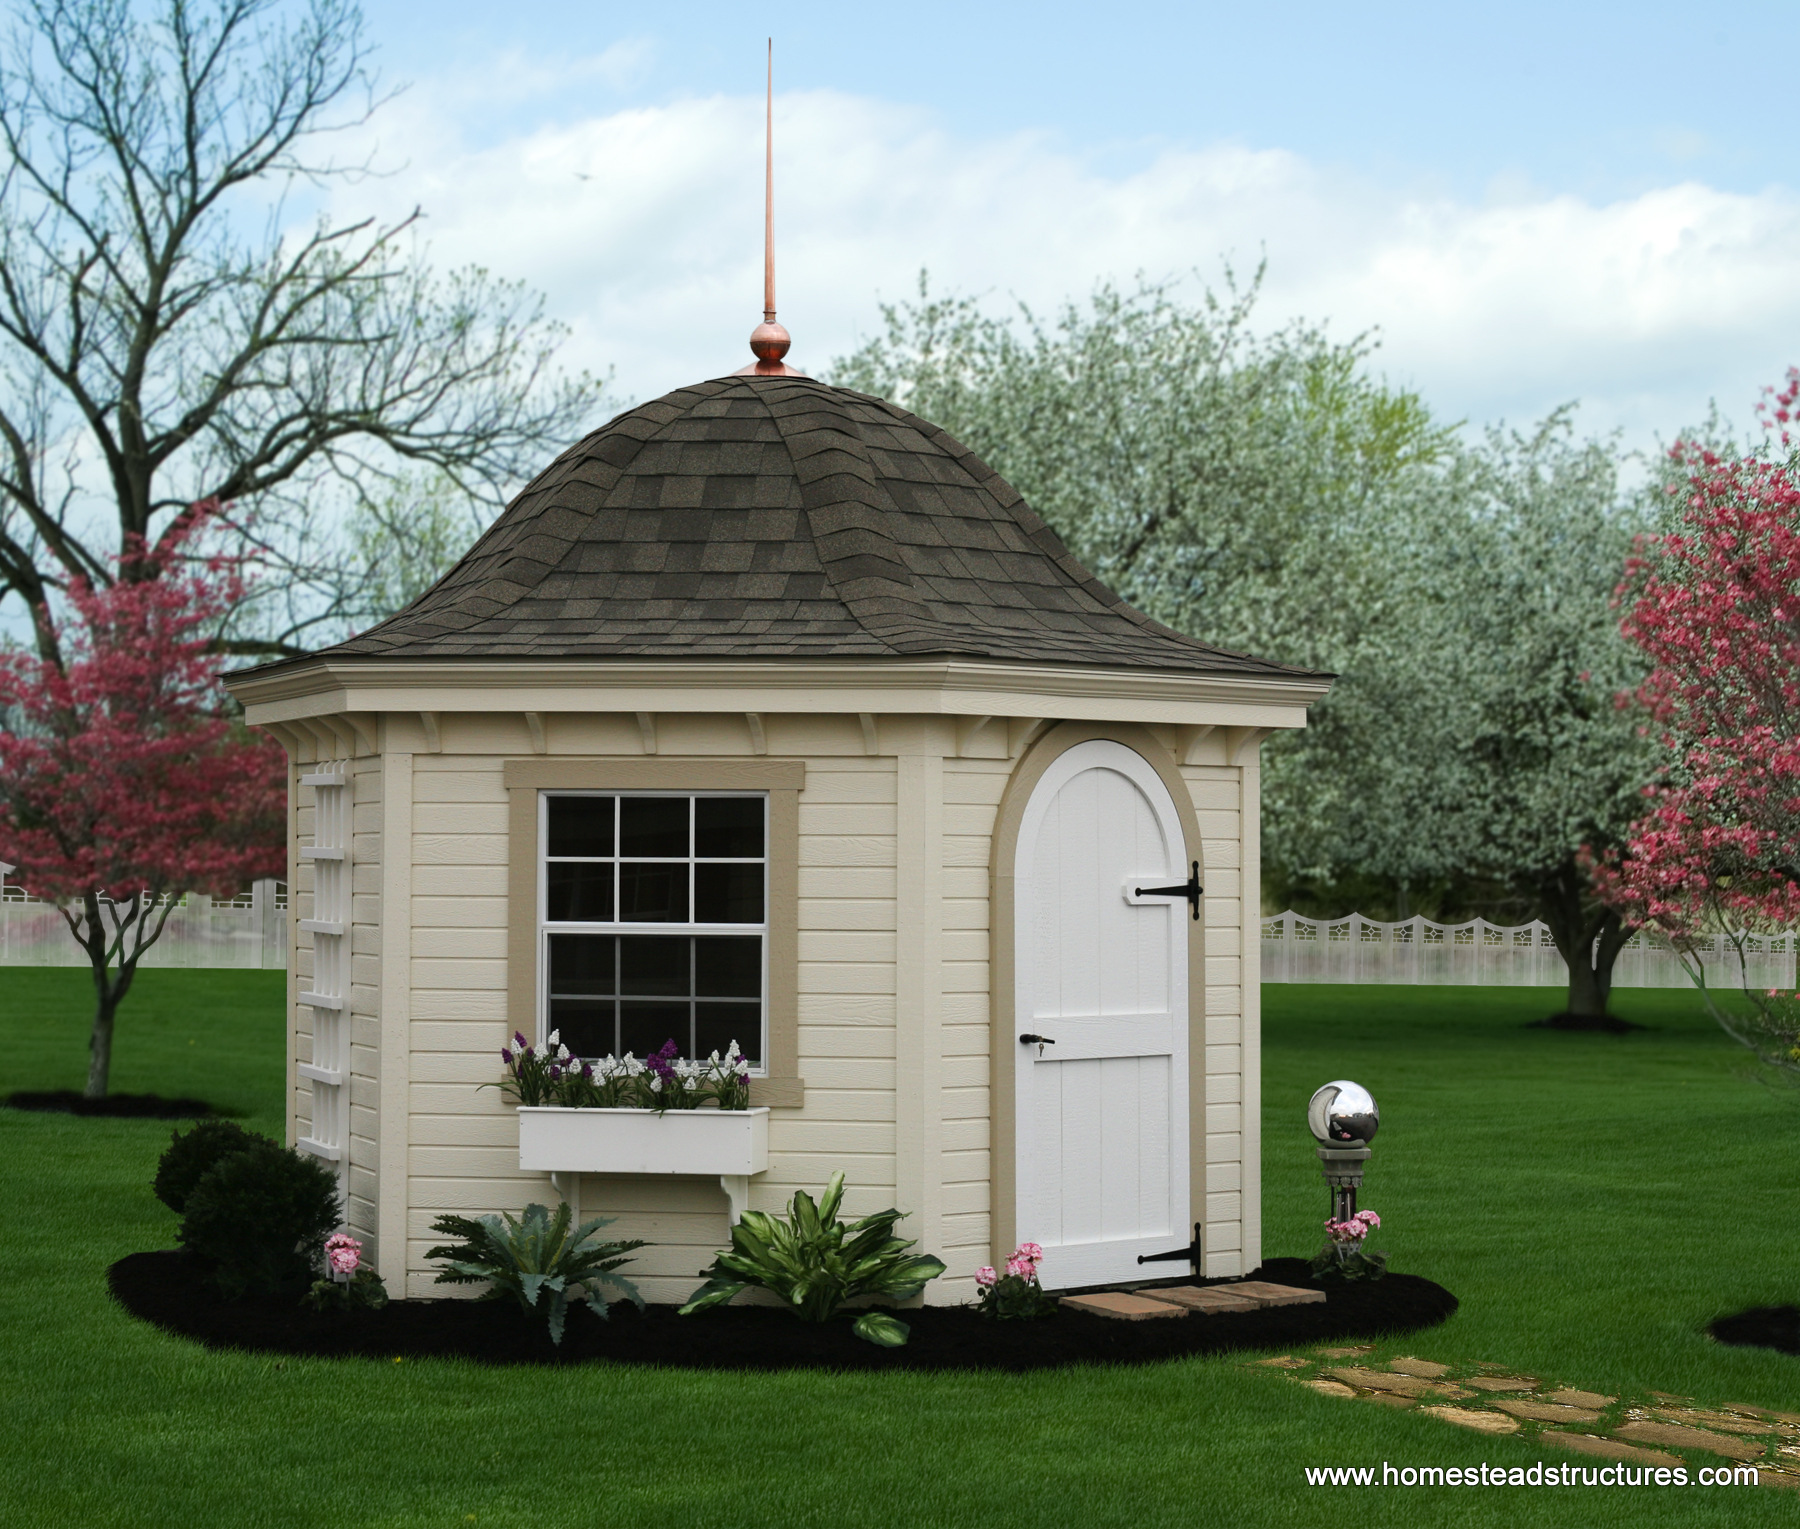 Homestead Gardens Landscaping: Premier Garden Sheds For Garden Storage